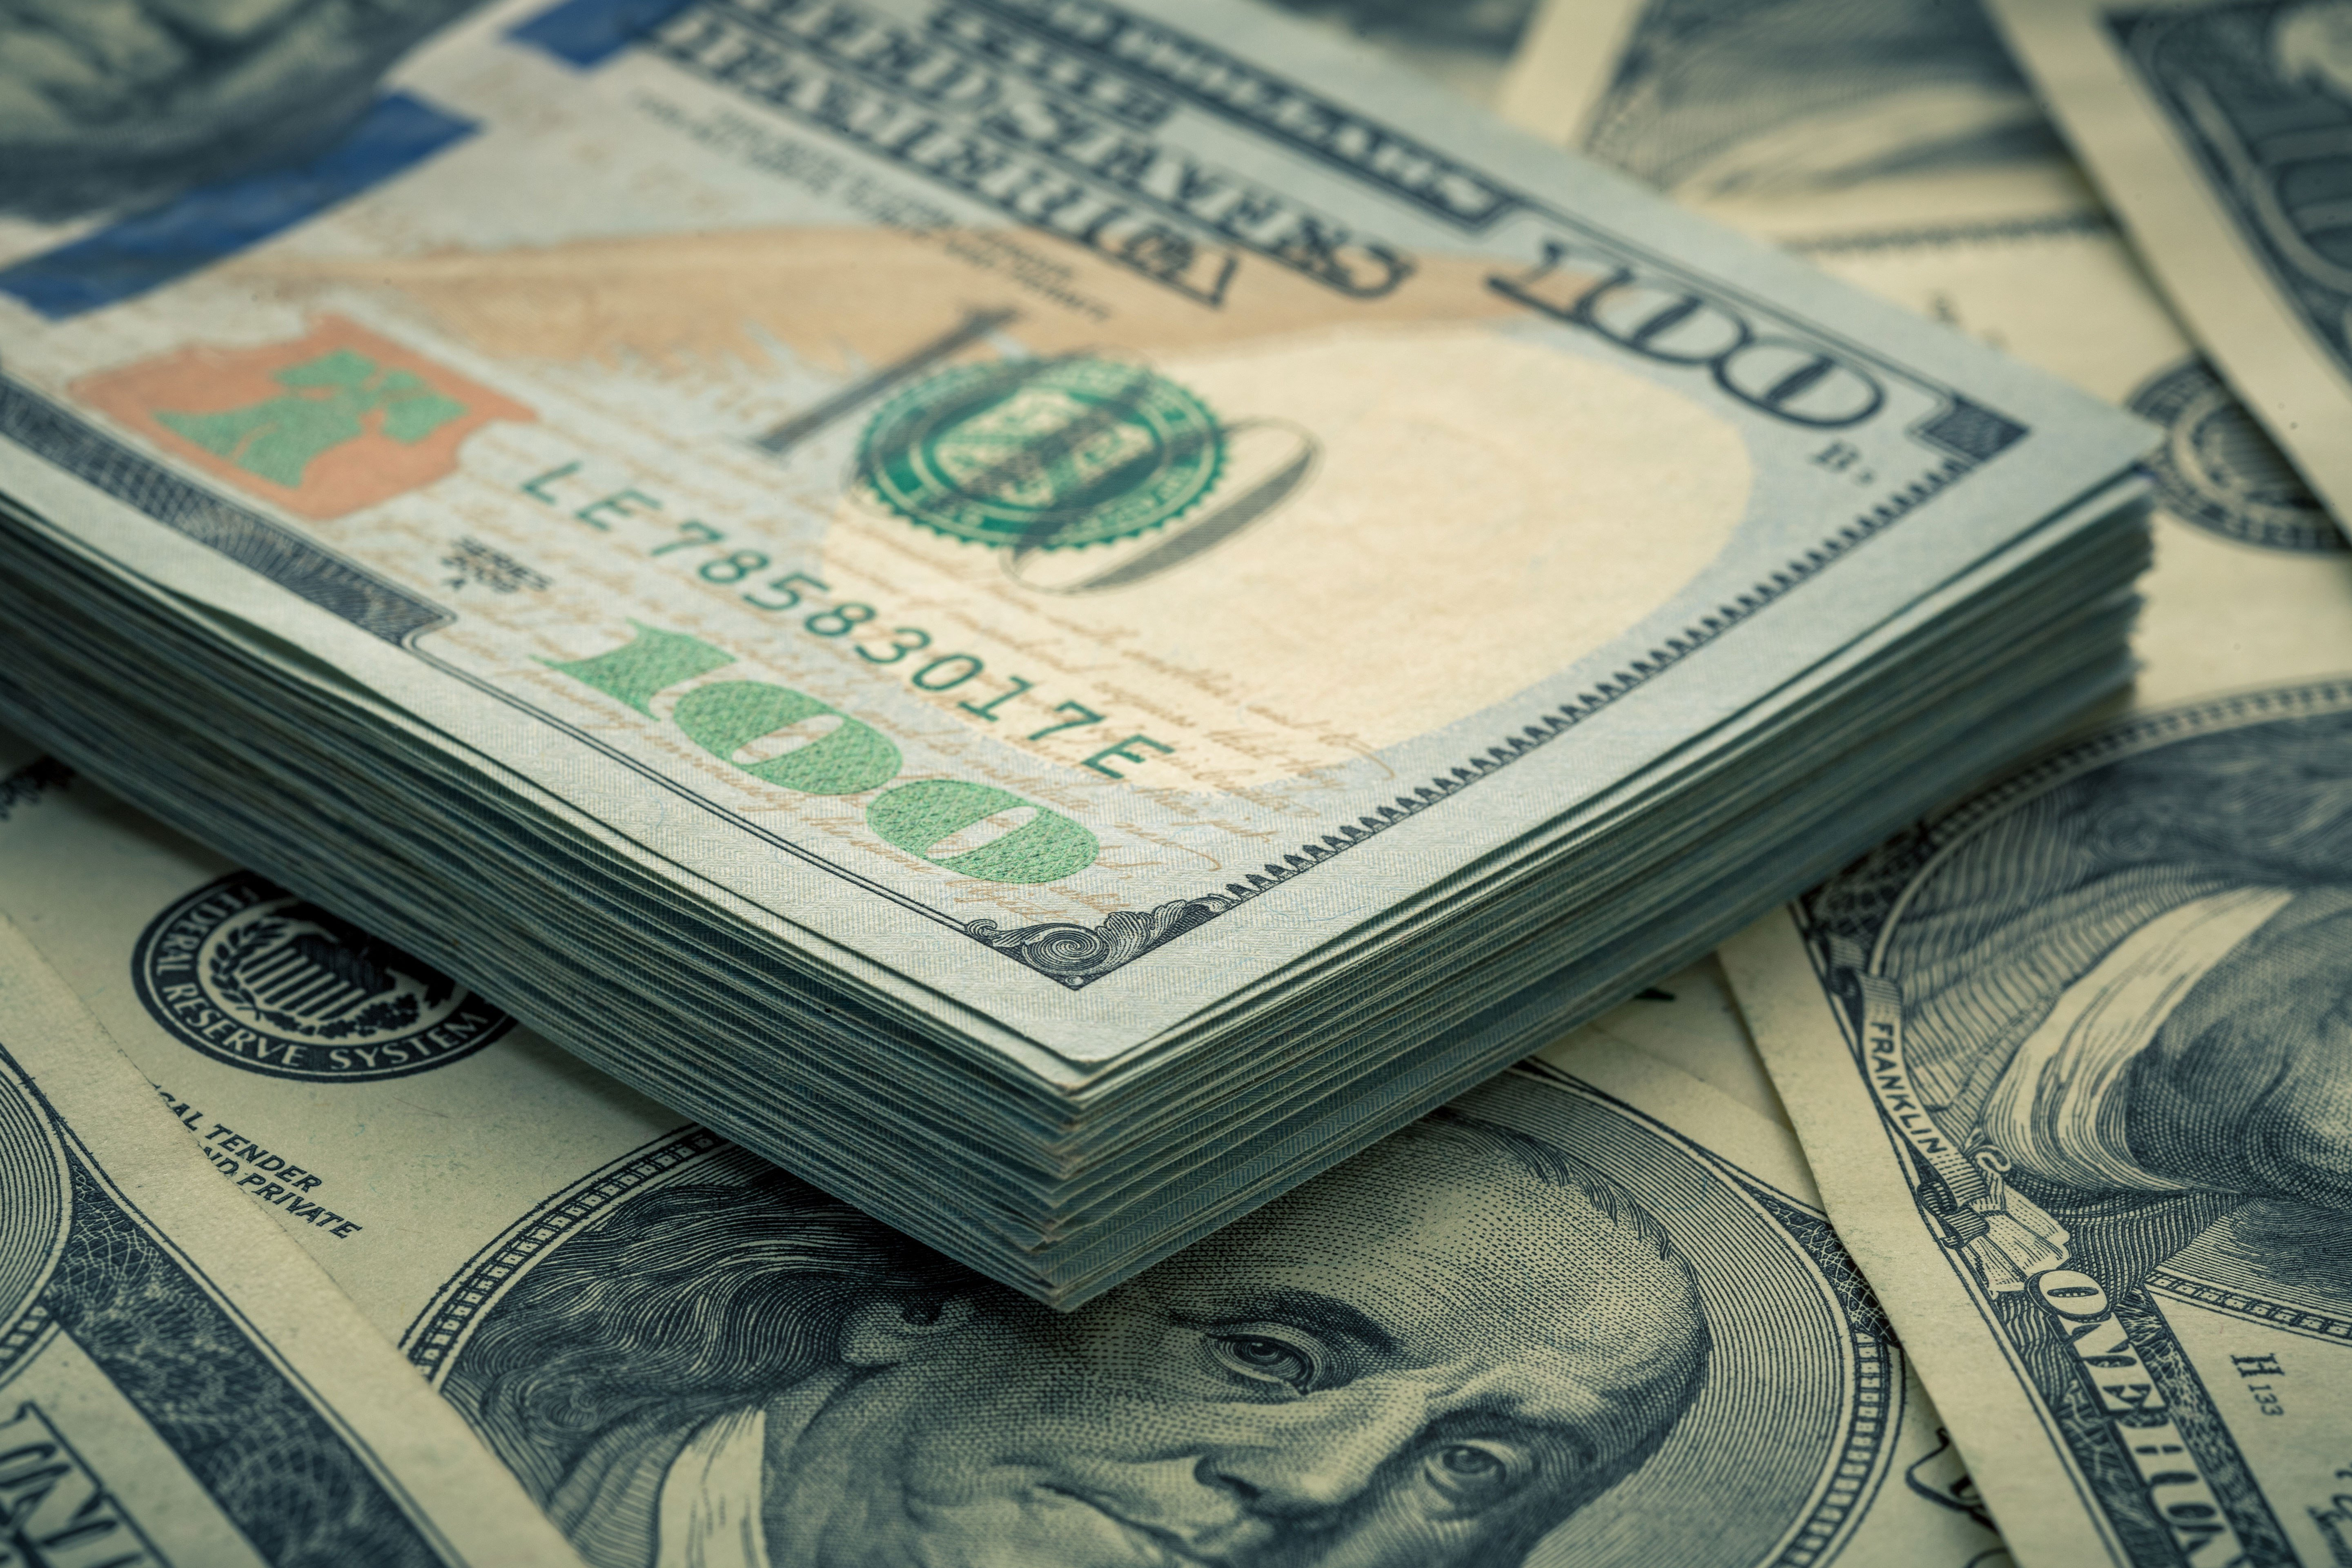 Woman temporarily becomes millionaire after account mix-up